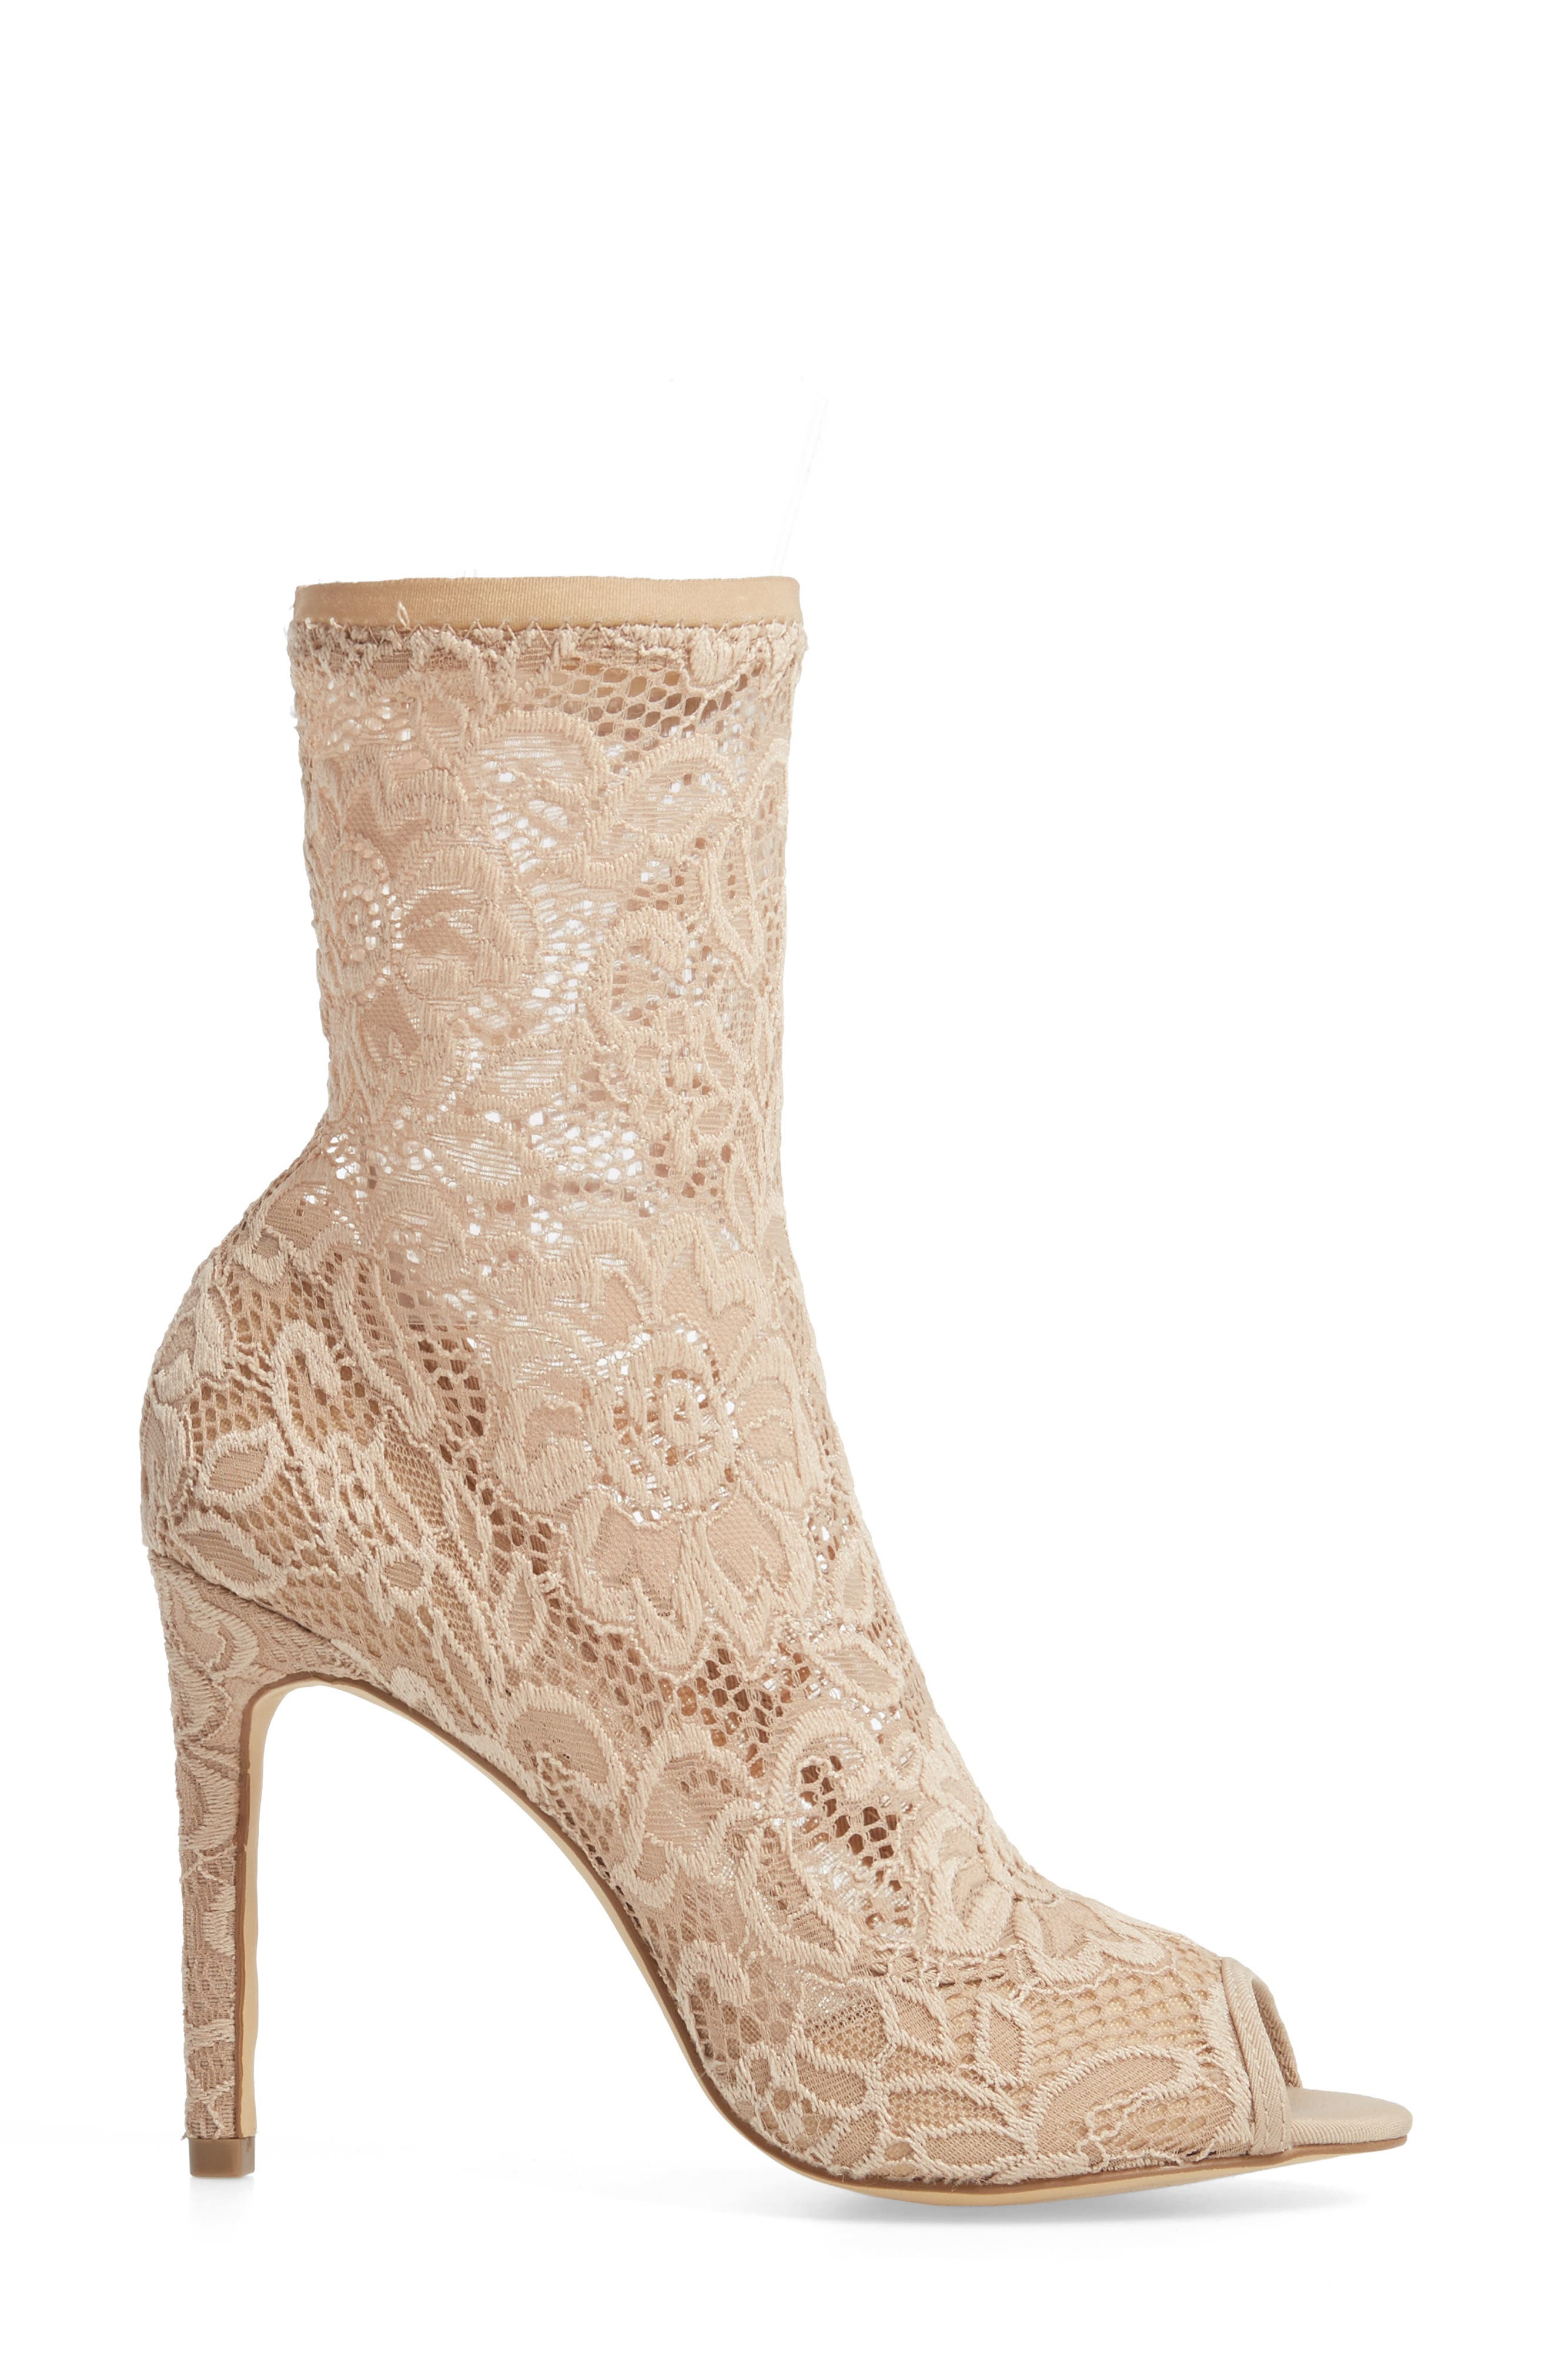 Imaginary Lace Sock Bootie,                             Alternate thumbnail 3, color,                             NUDE FABRIC